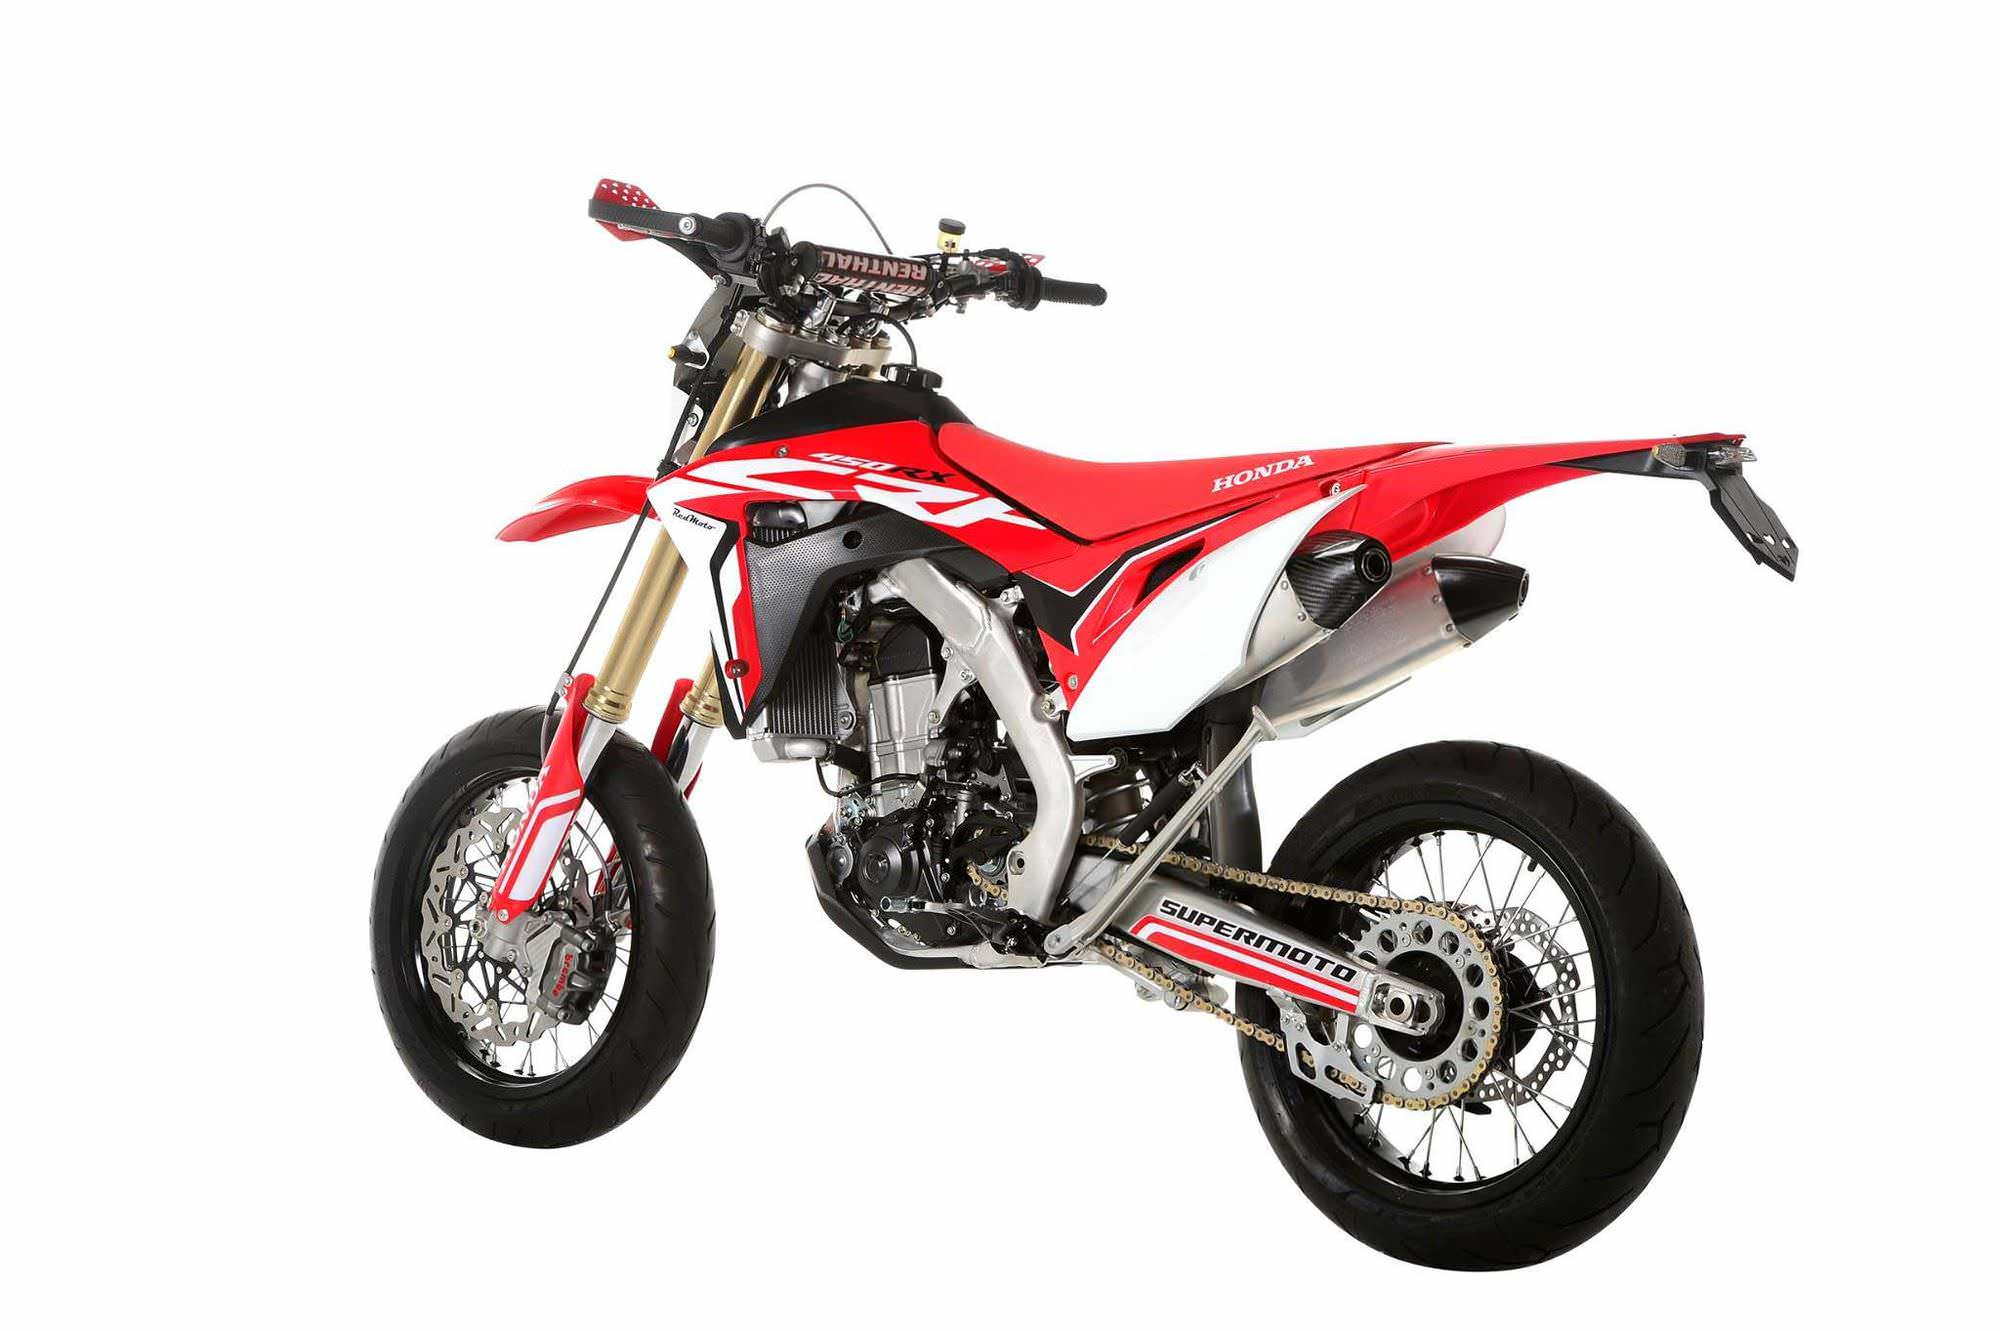 Index of /pictures/2017-crf450r-supermoto